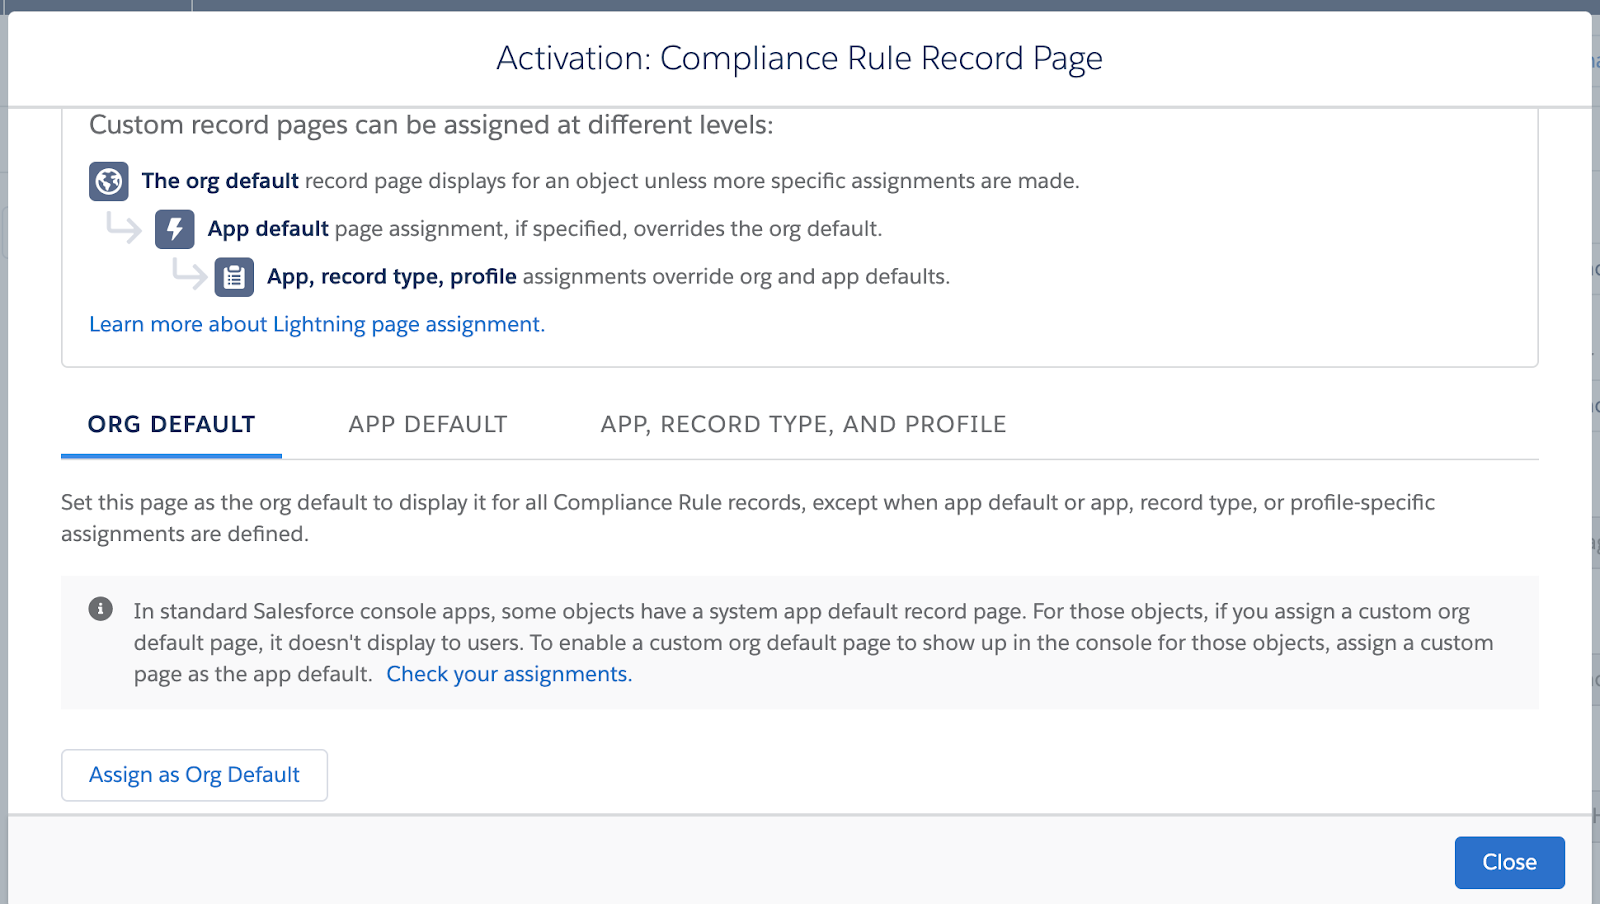 Compliance Rule Record Page